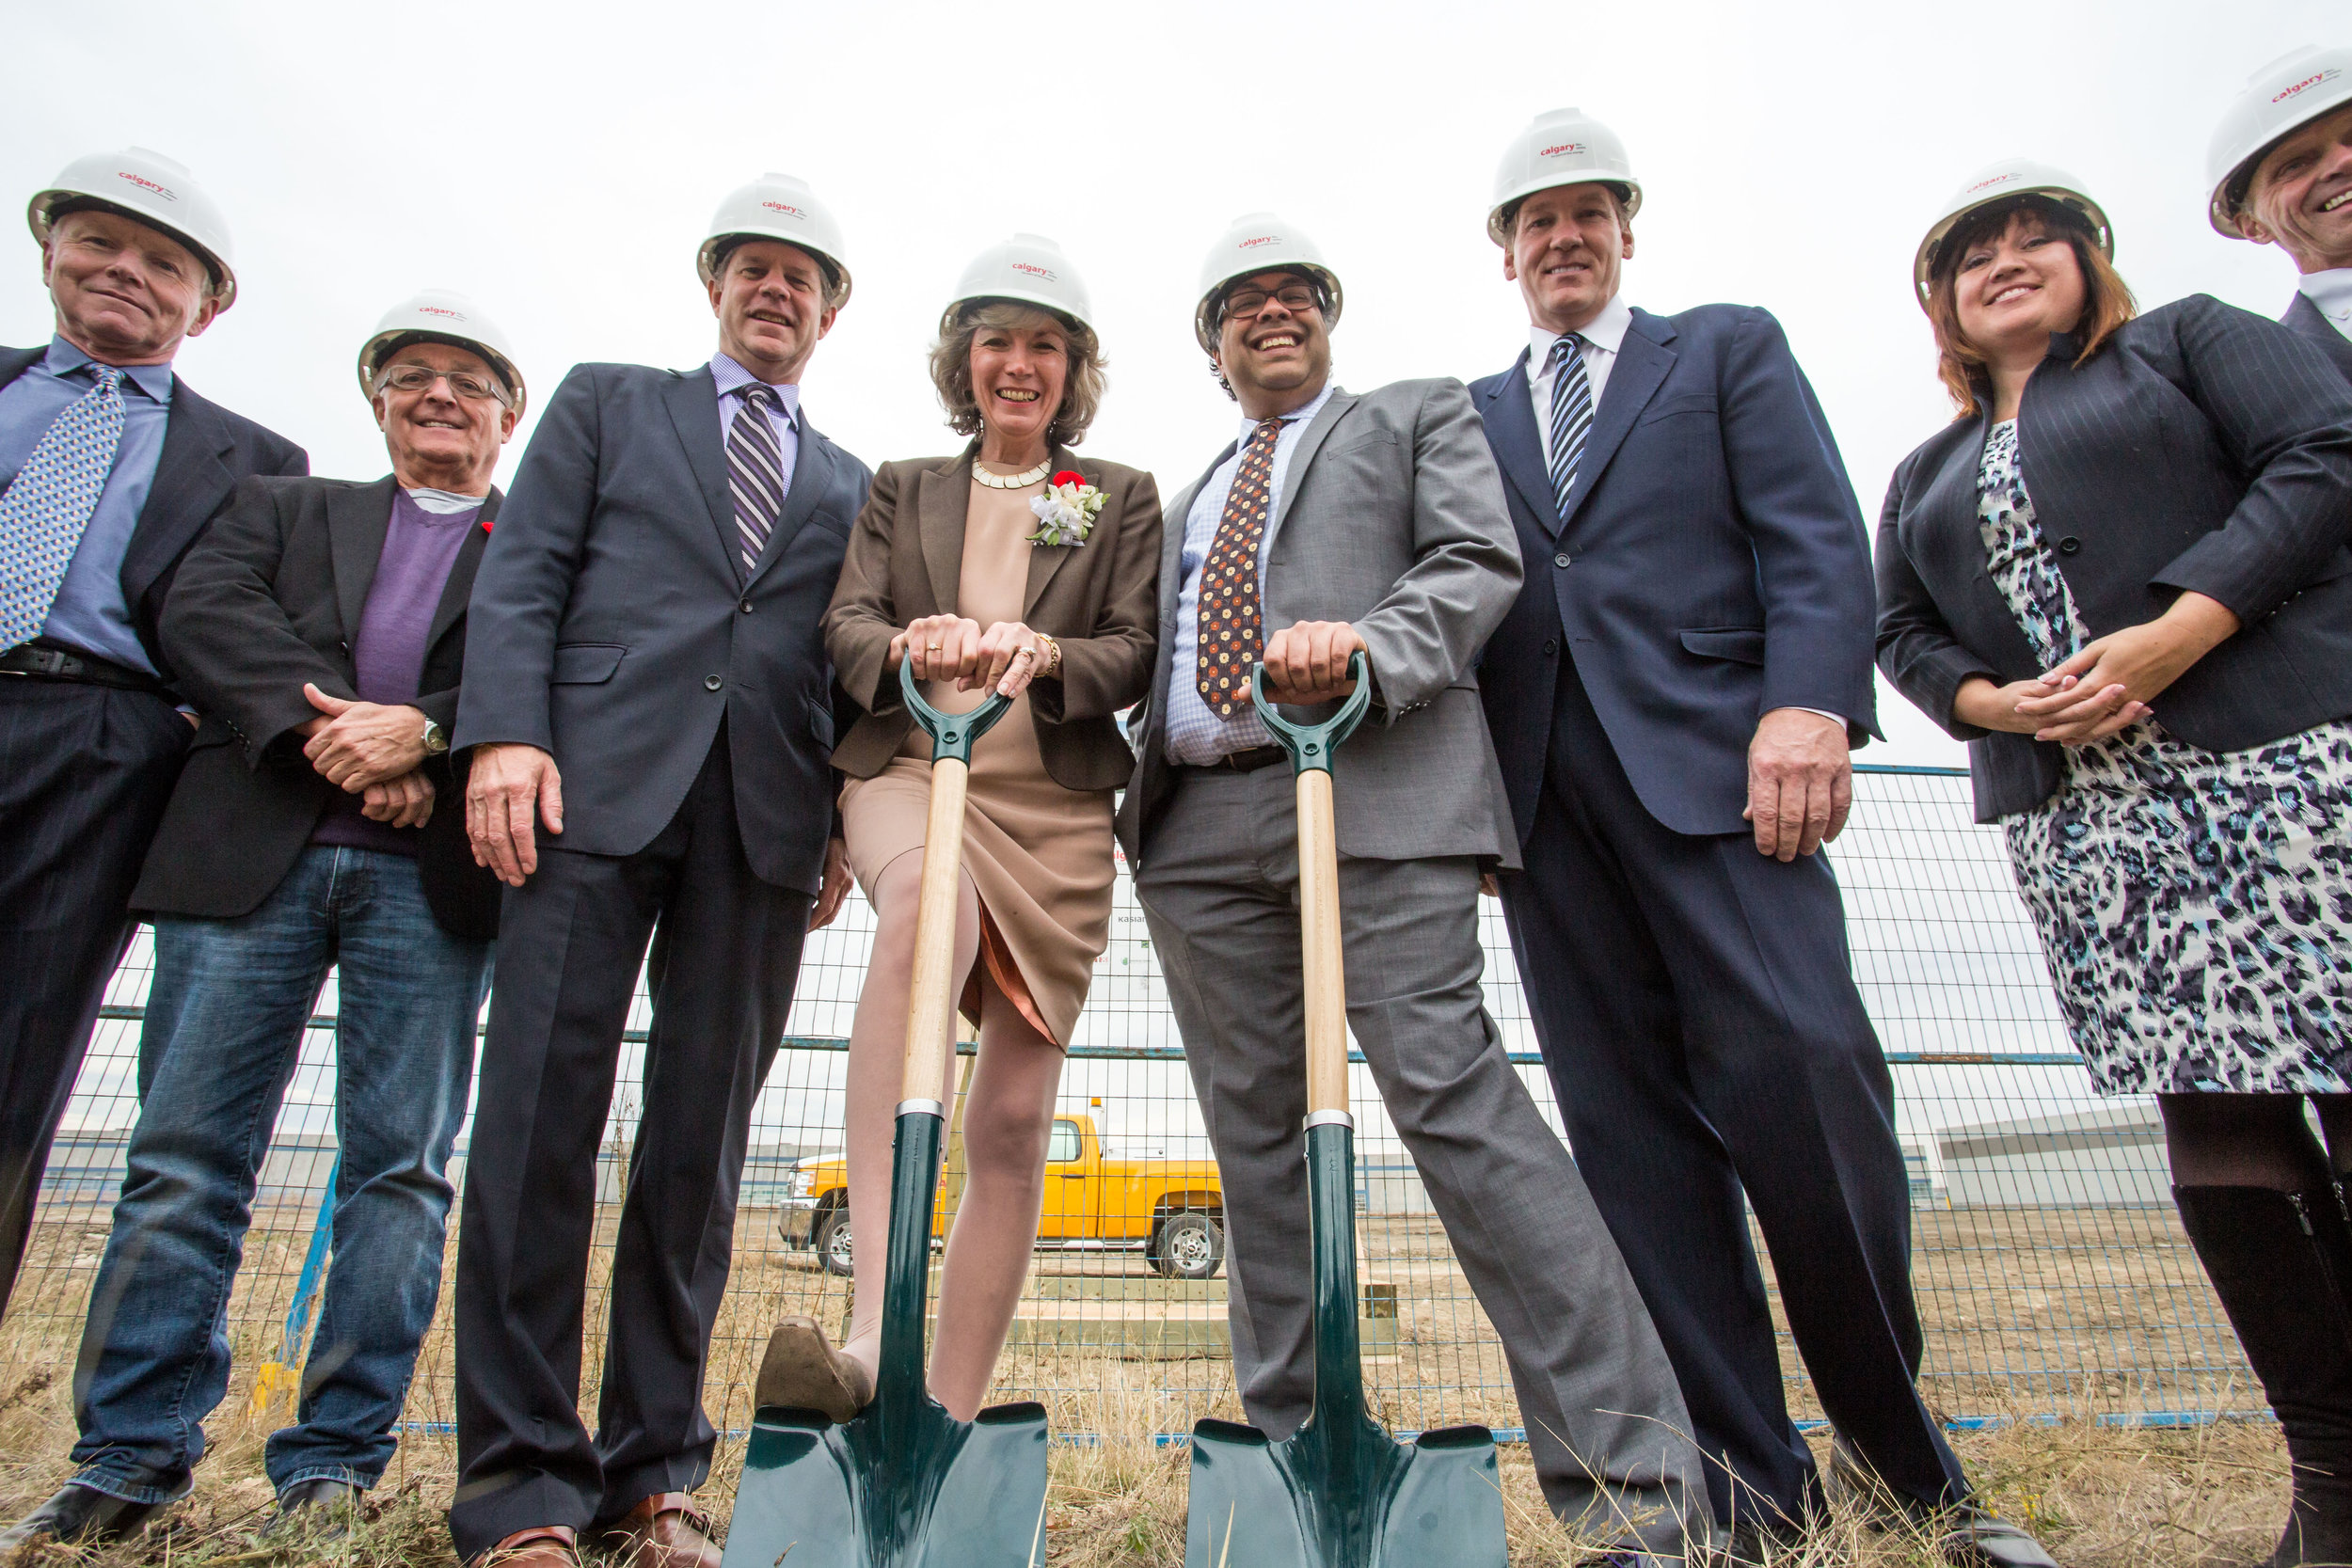 Breaking ground on the Calgary Film Centre, October 31, 2014